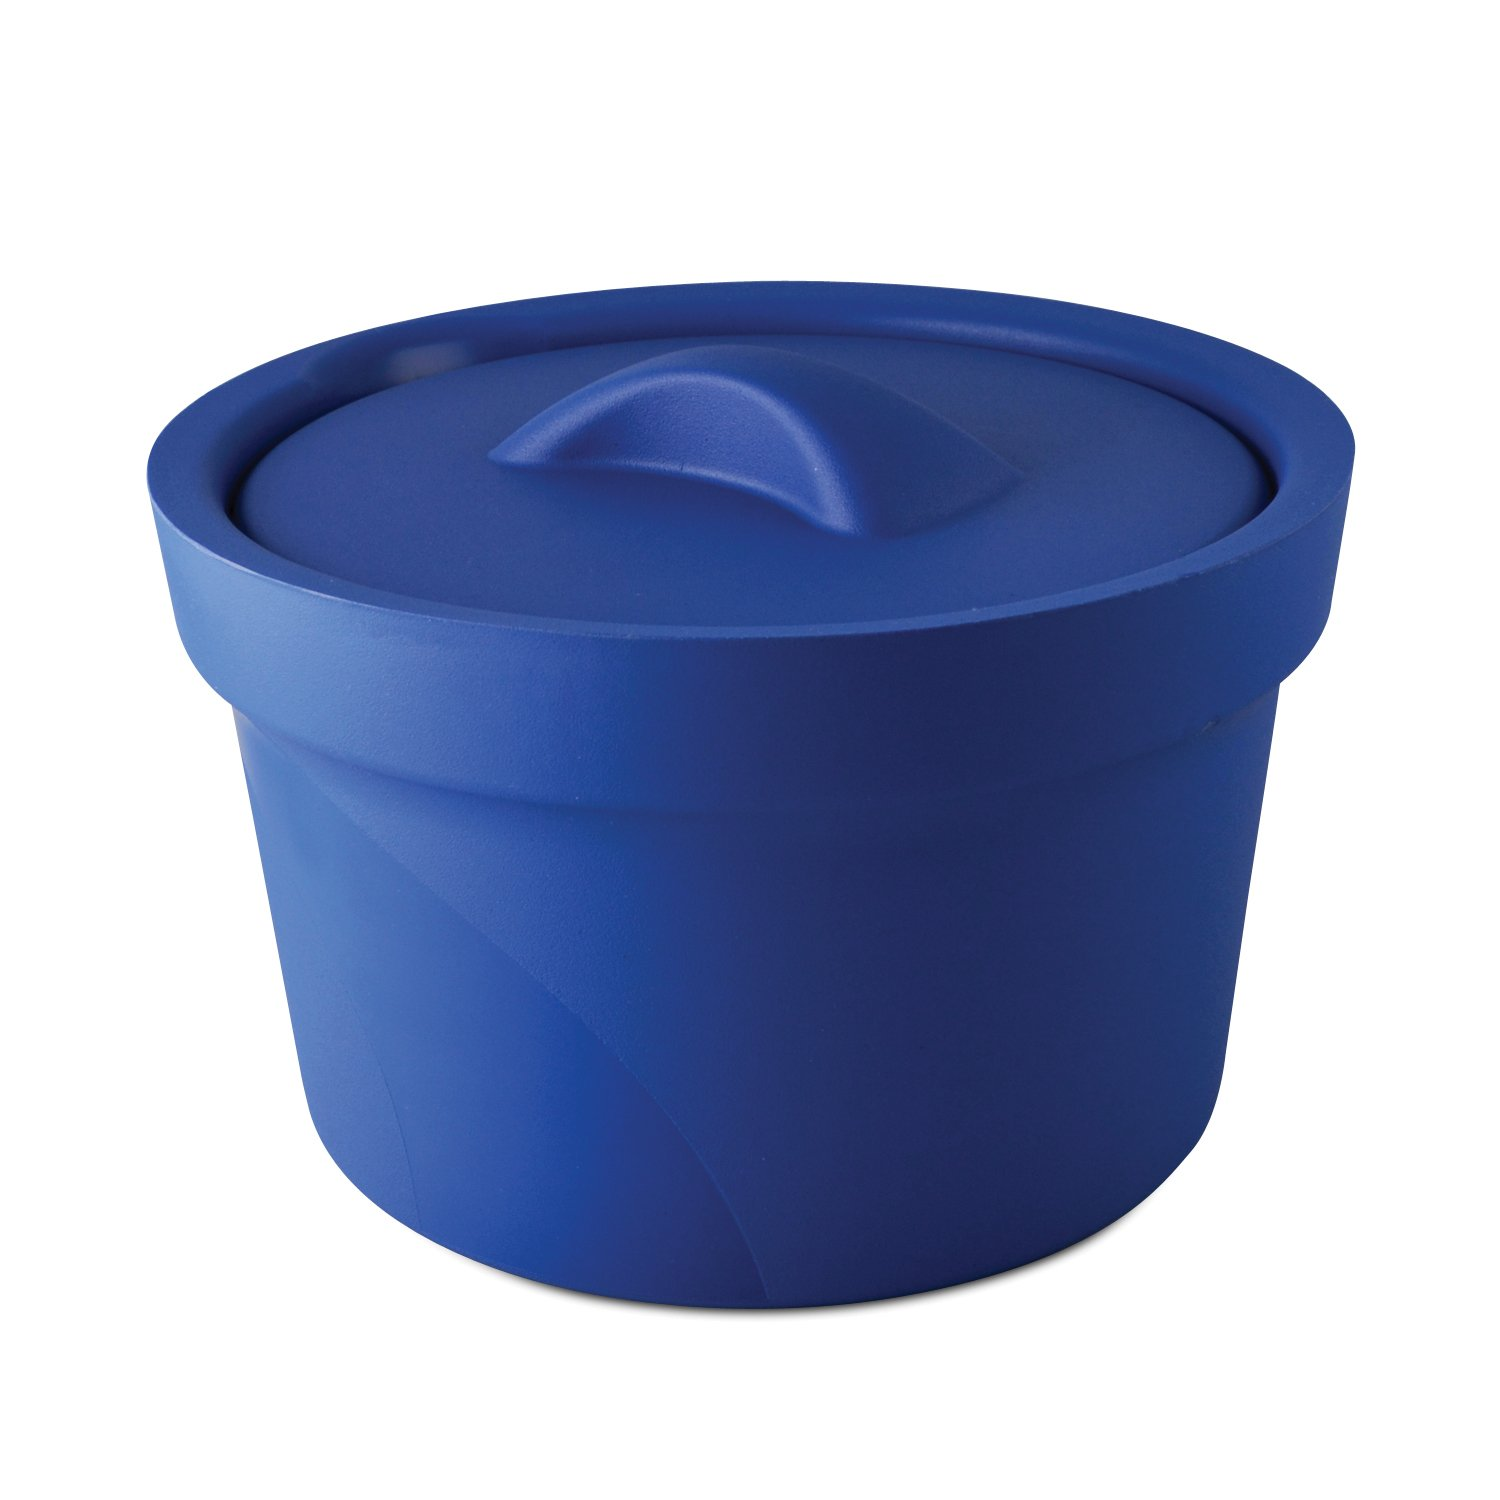 Bel-Art Magic Touch 2 High Performance Blue Ice Bucket; 2.5 Liter, with Lid (M16807-2001) by SP Scienceware (Image #1)